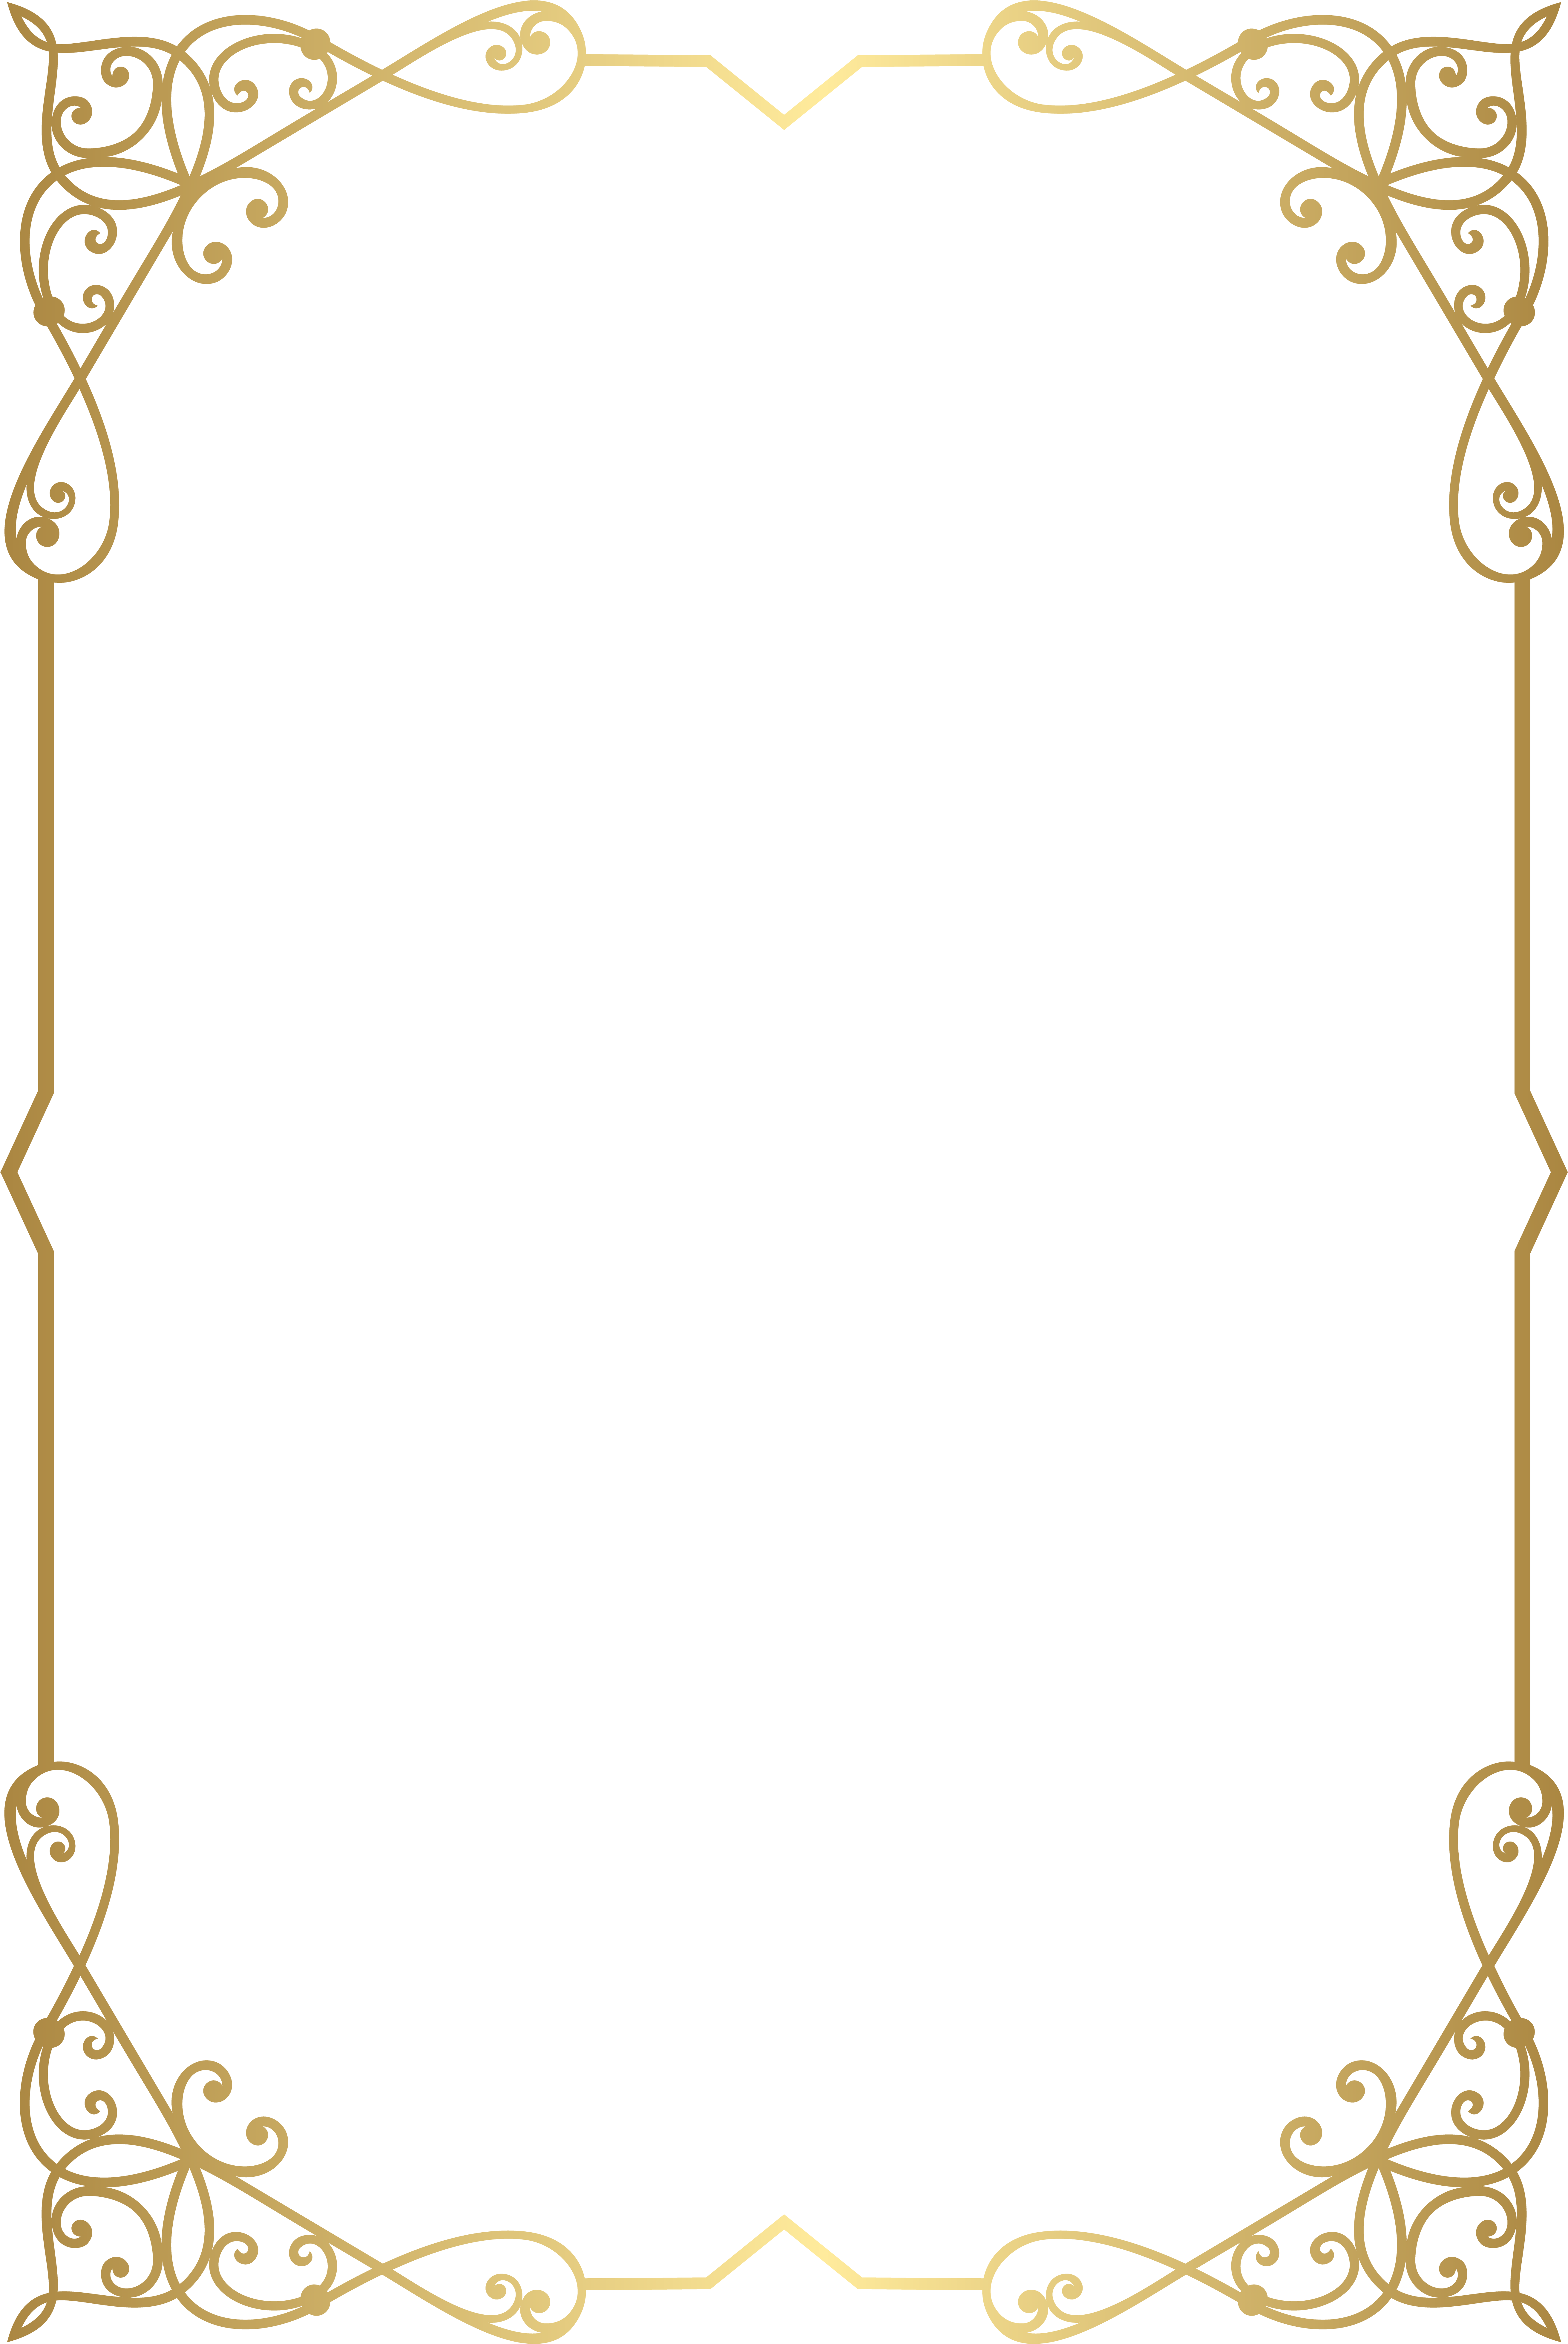 HD Decorative Frame Png.